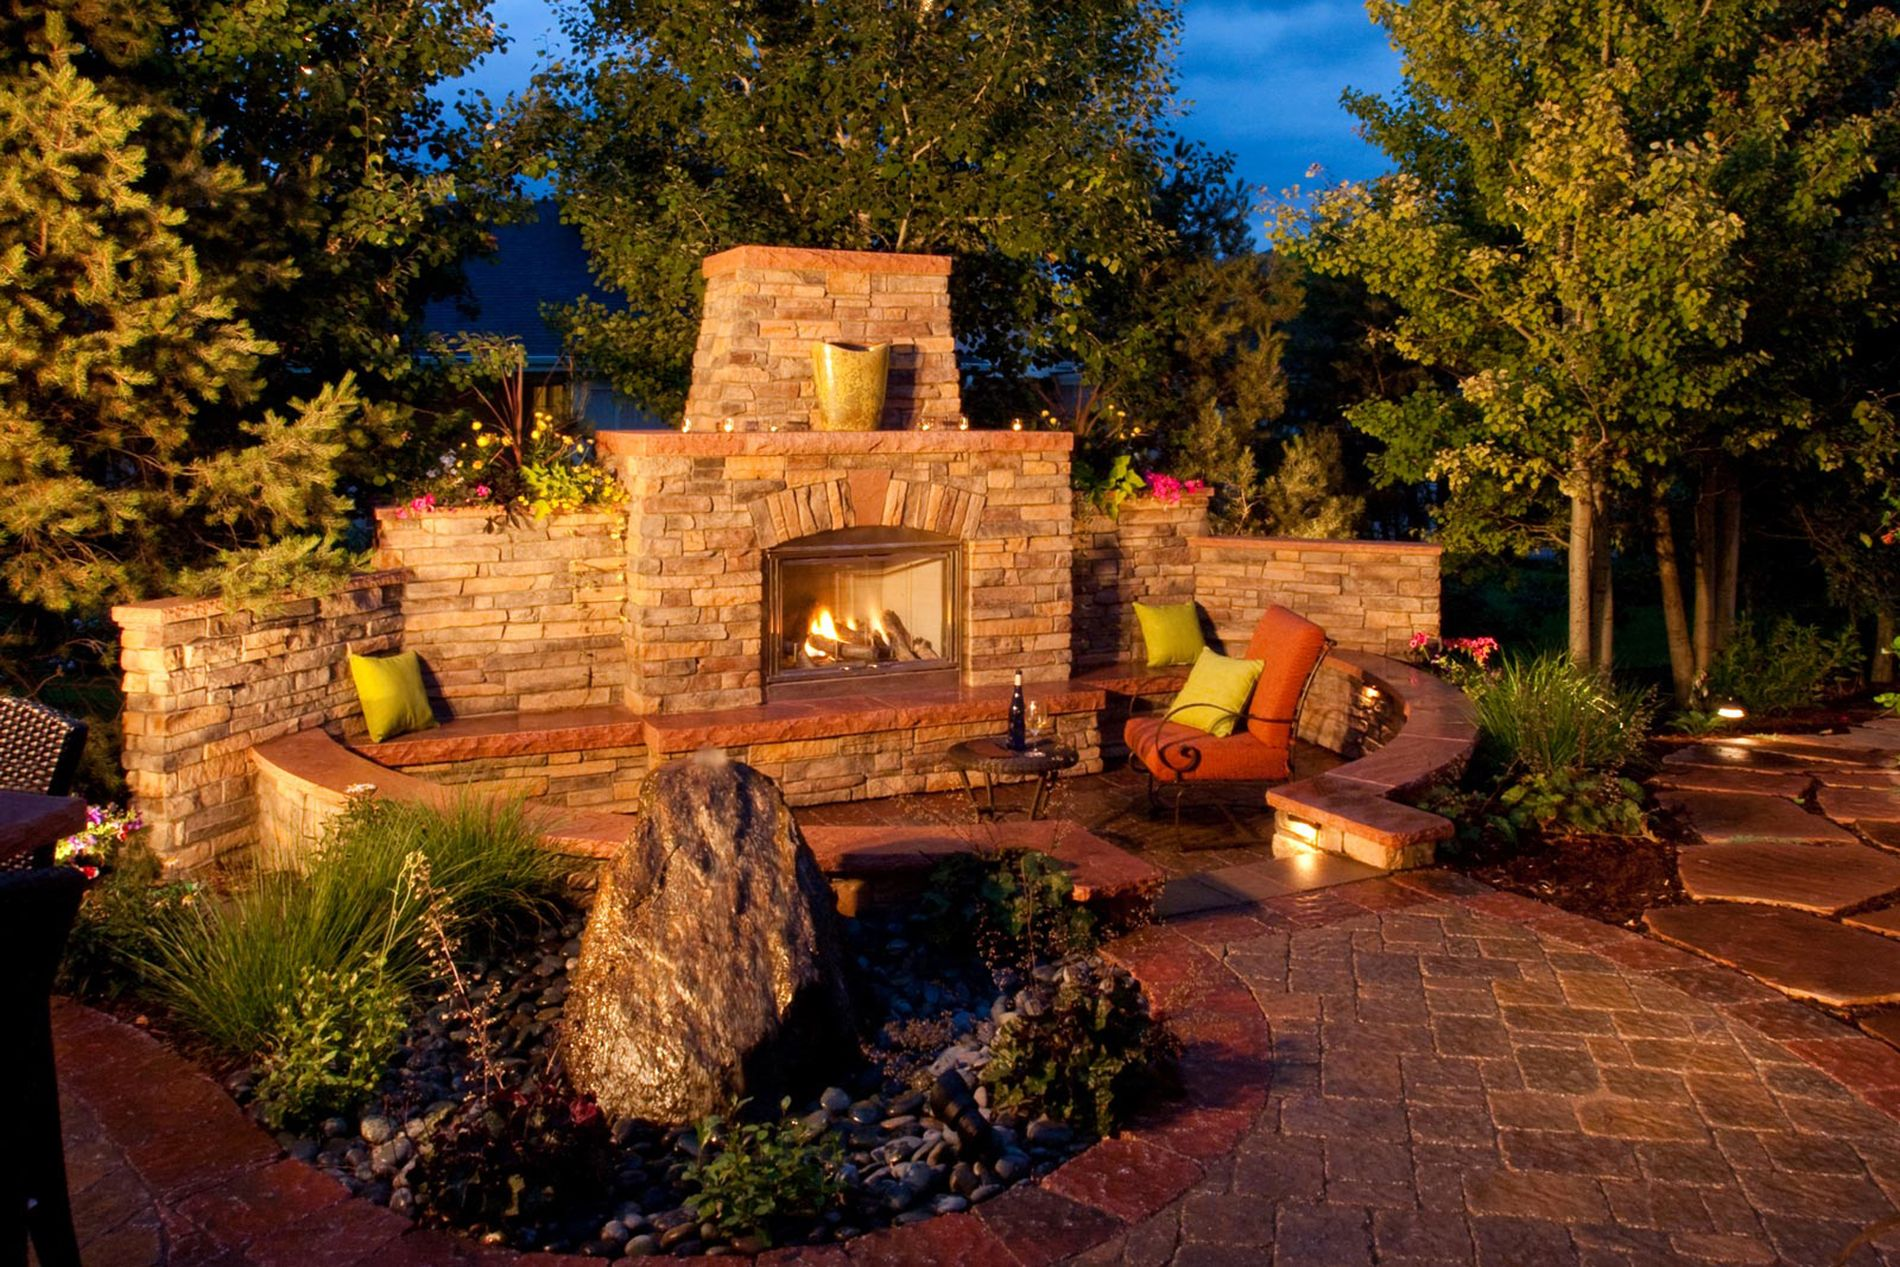 Outdoor Fireplace and Water Feature with Landscape Lights